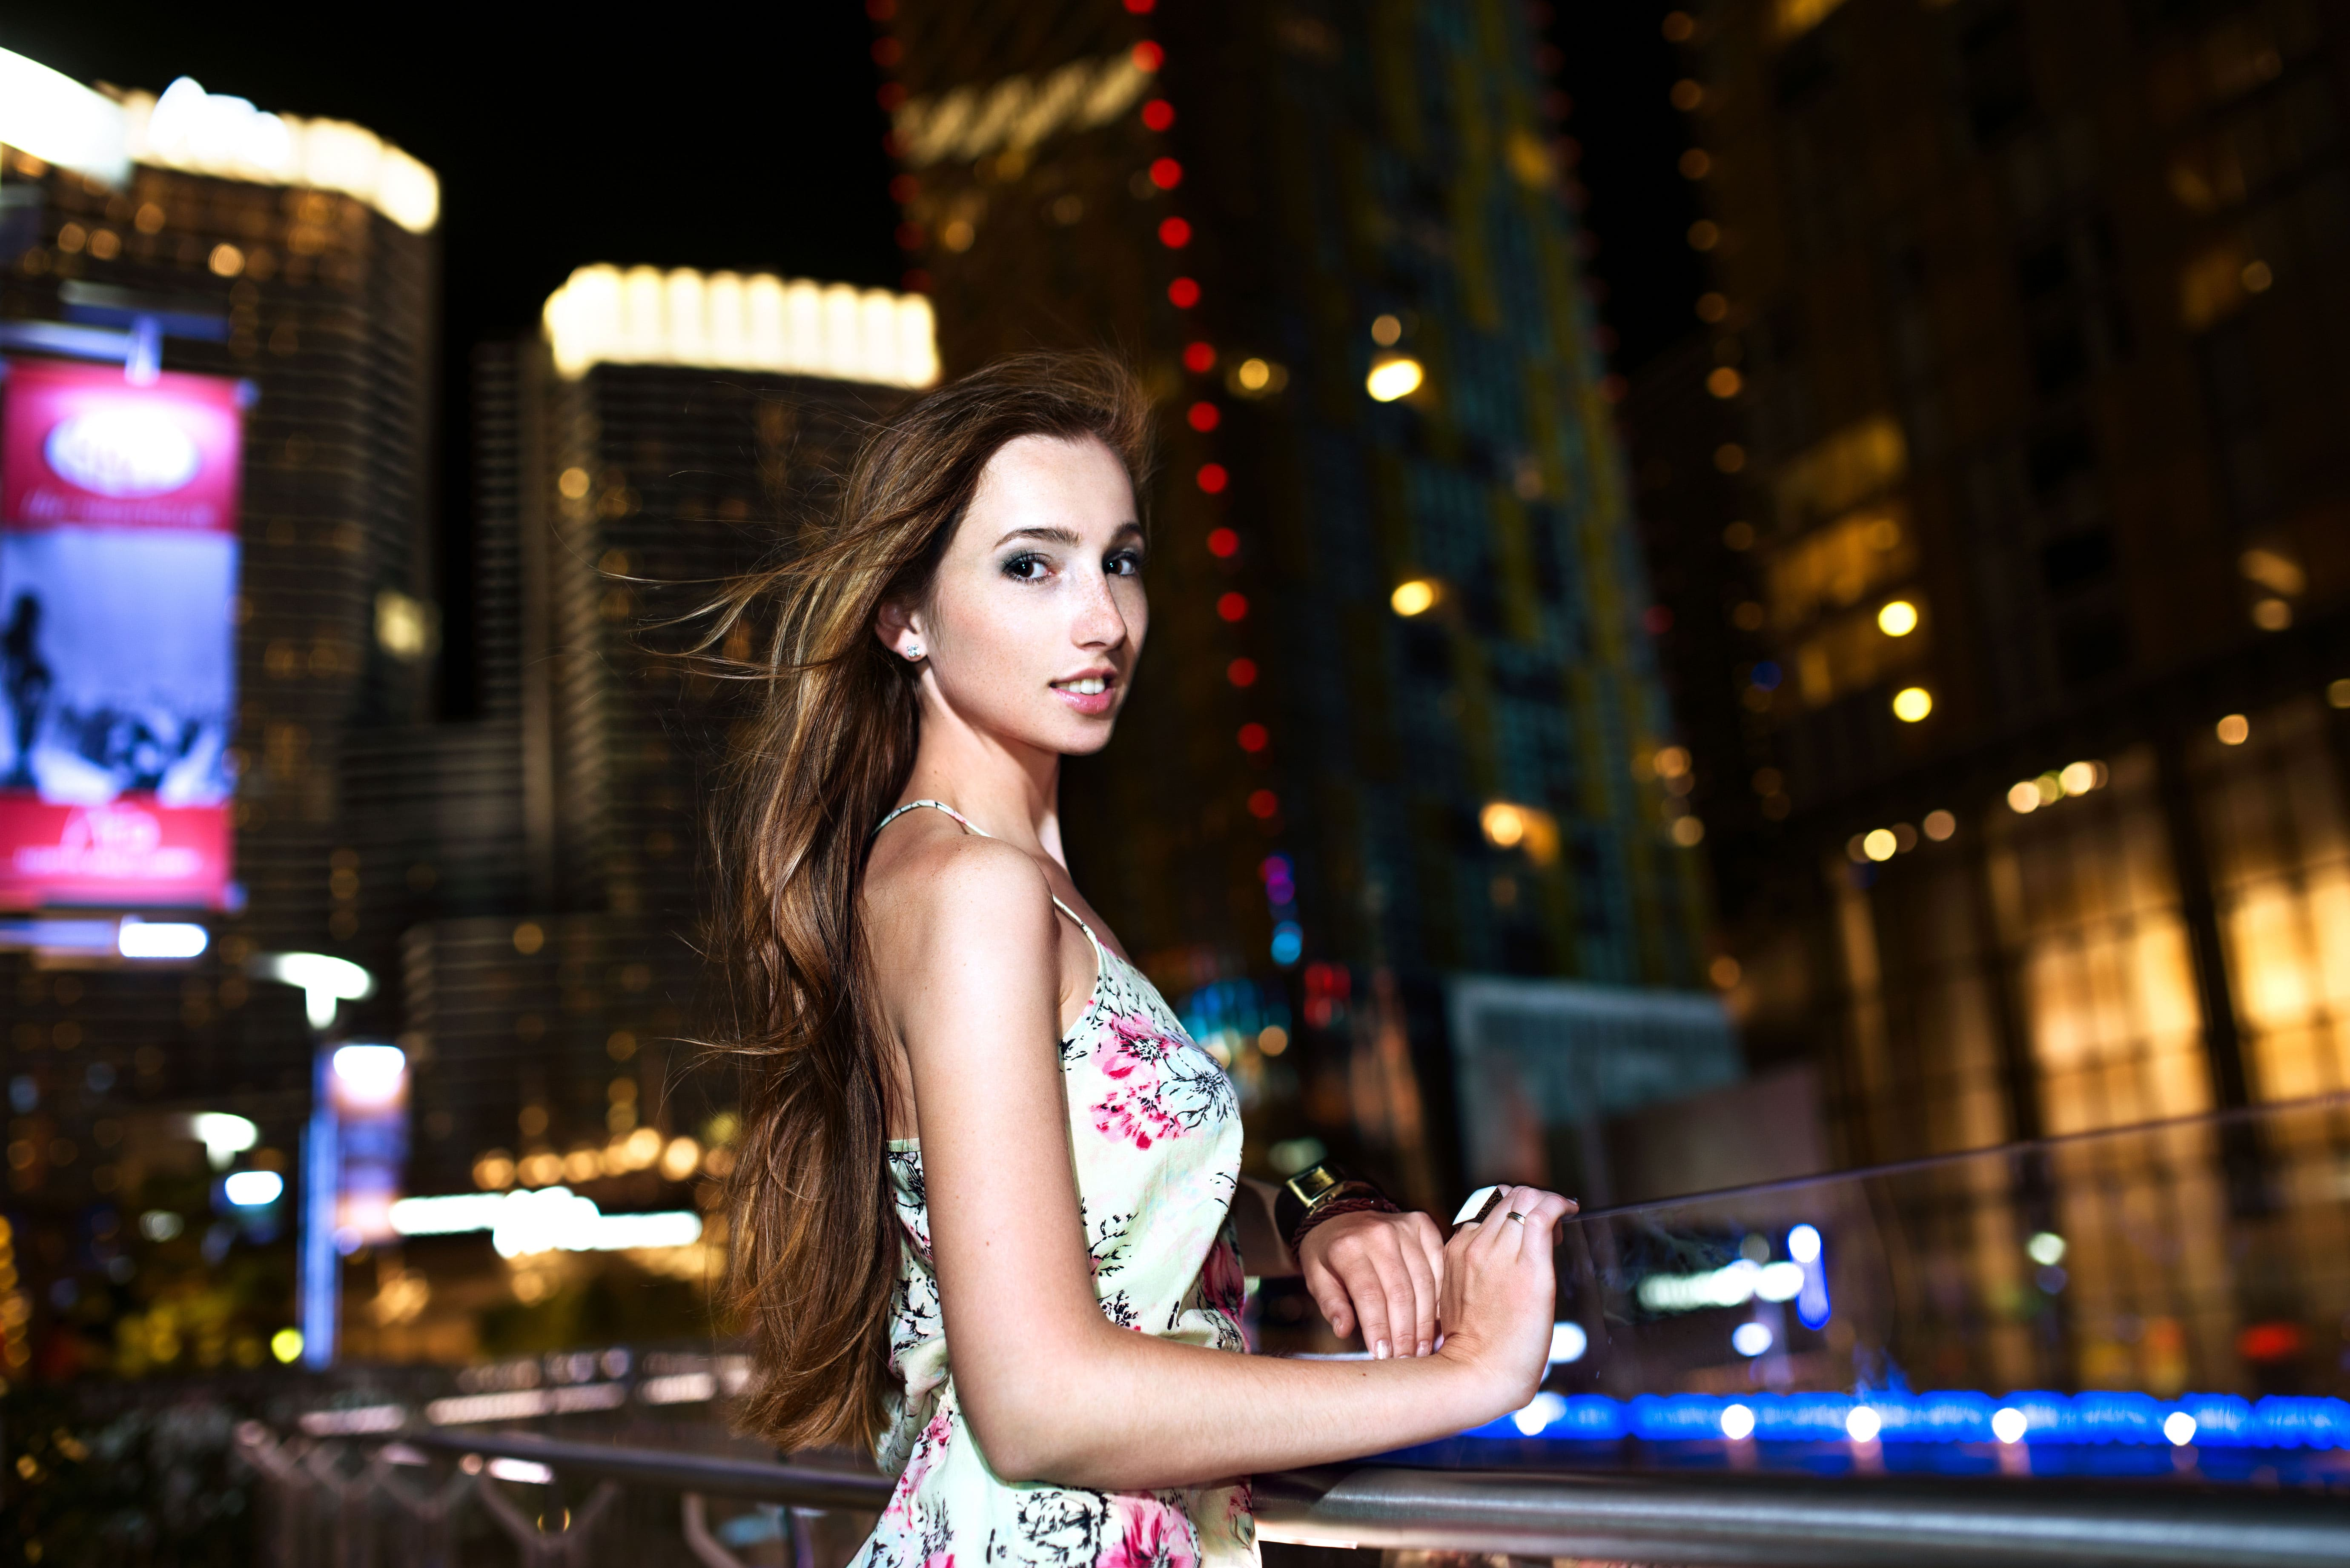 Las Vegas nightclub dress code for women